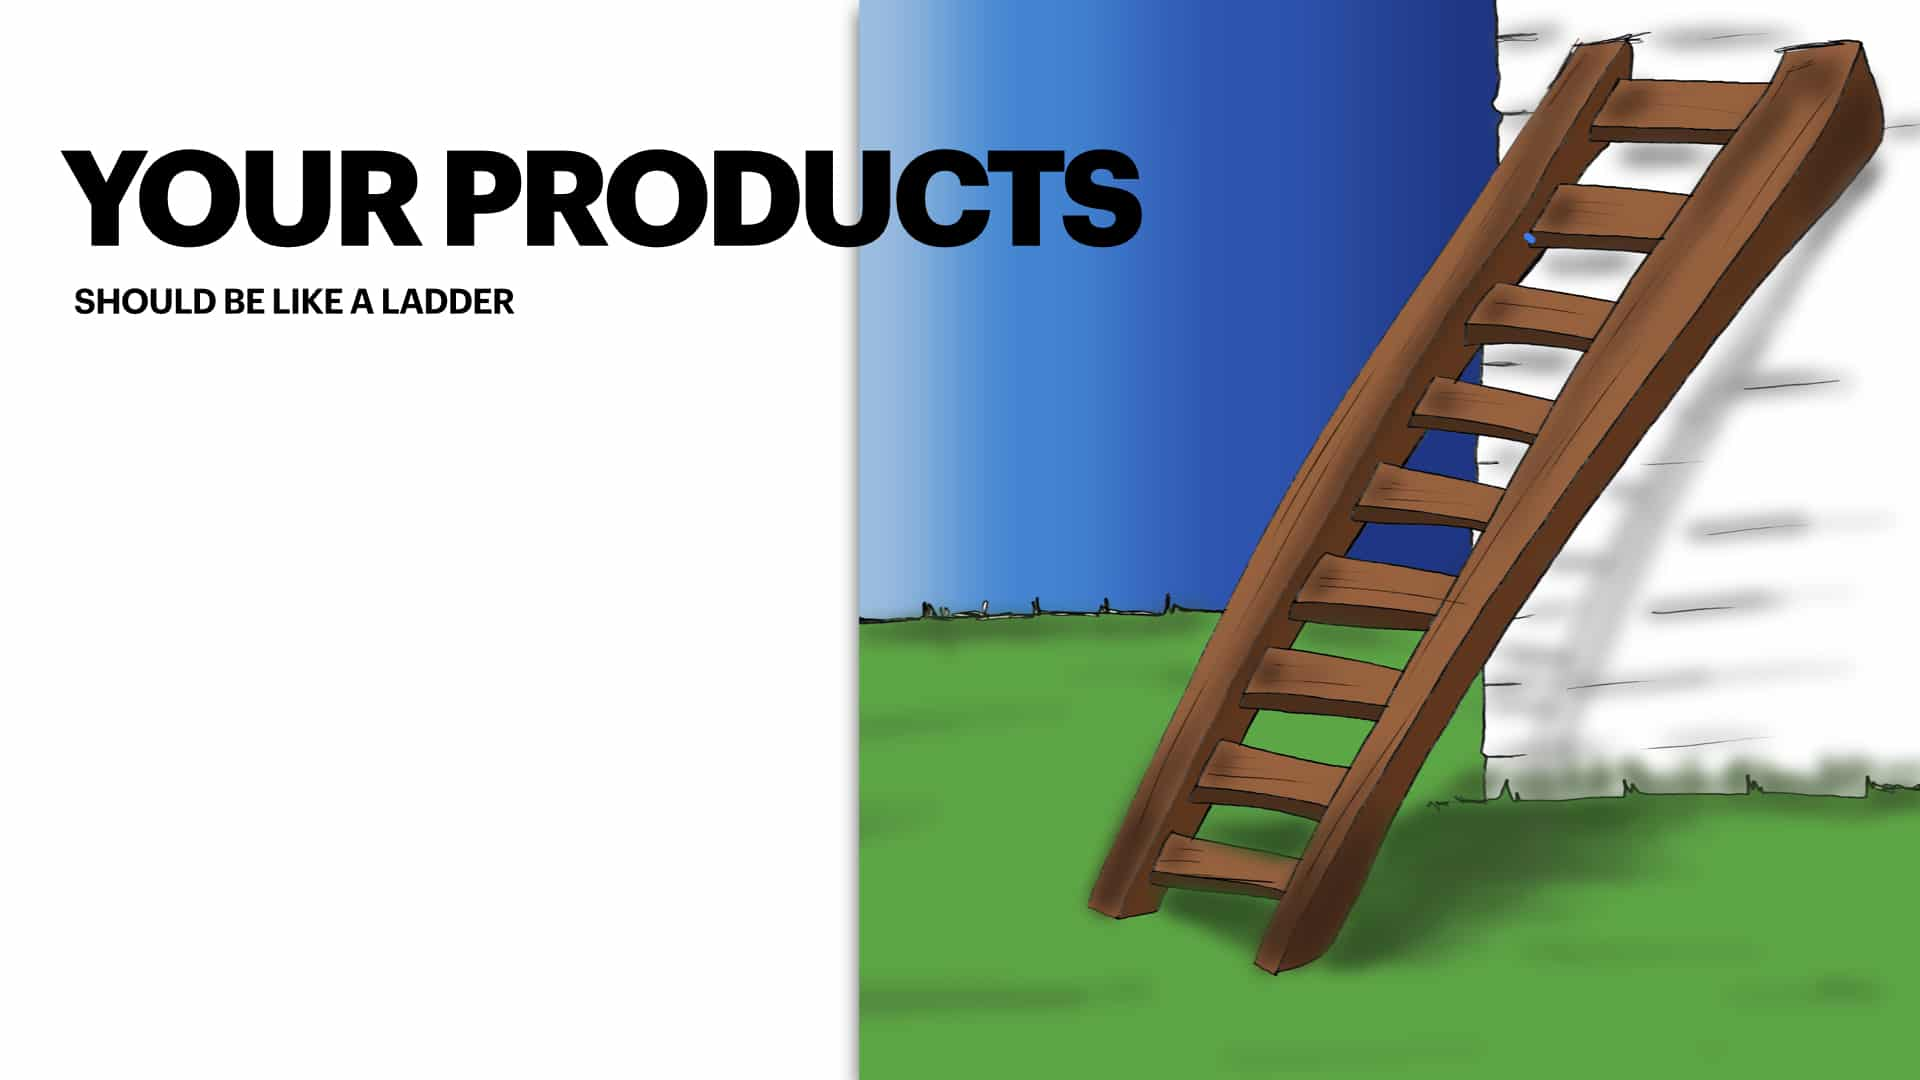 Your products should be part of a ladder in your small business